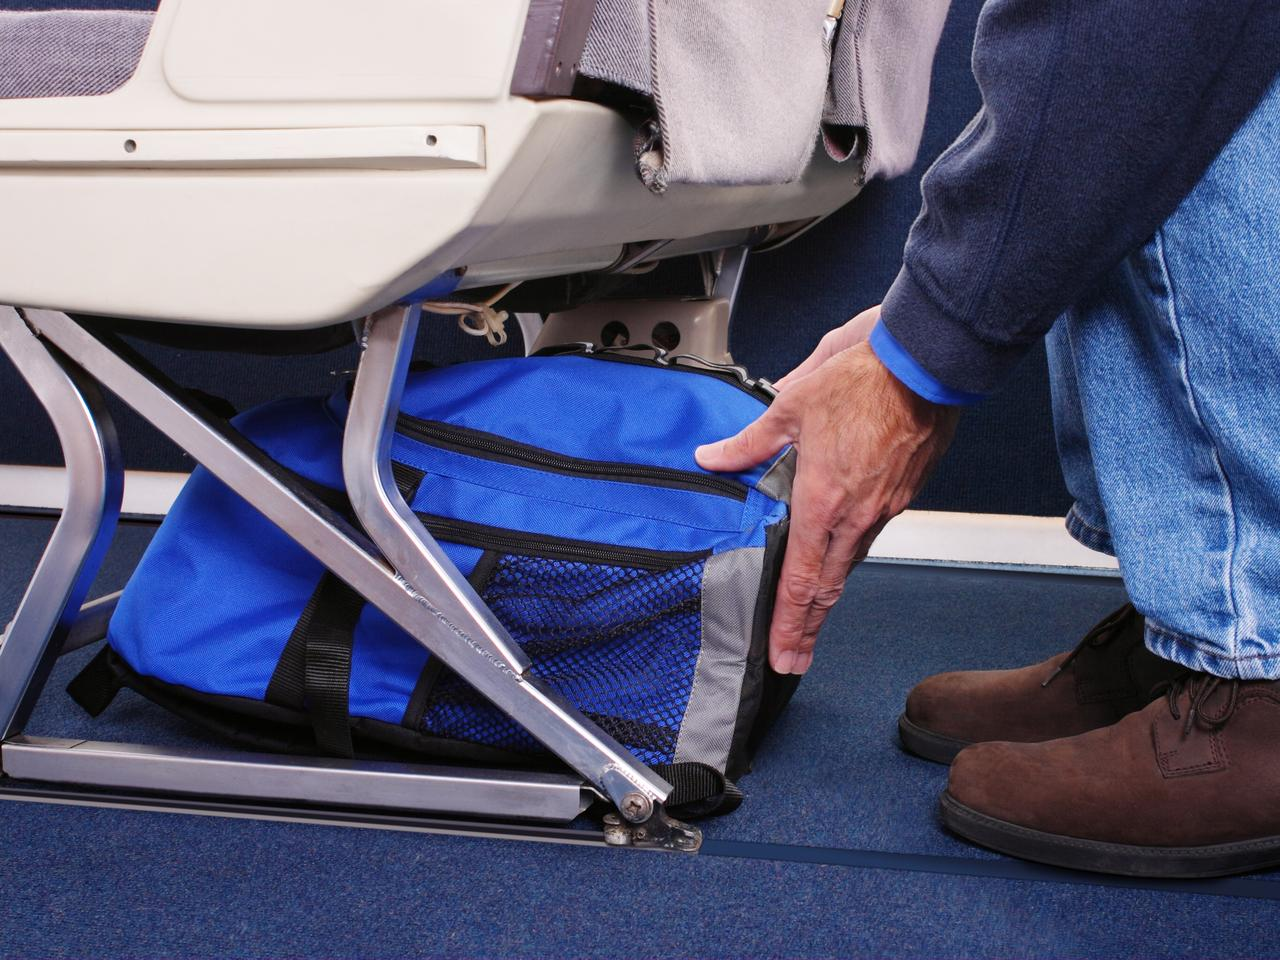 Airplane passenger stowing his carry-on luggage under the seat in front of him.